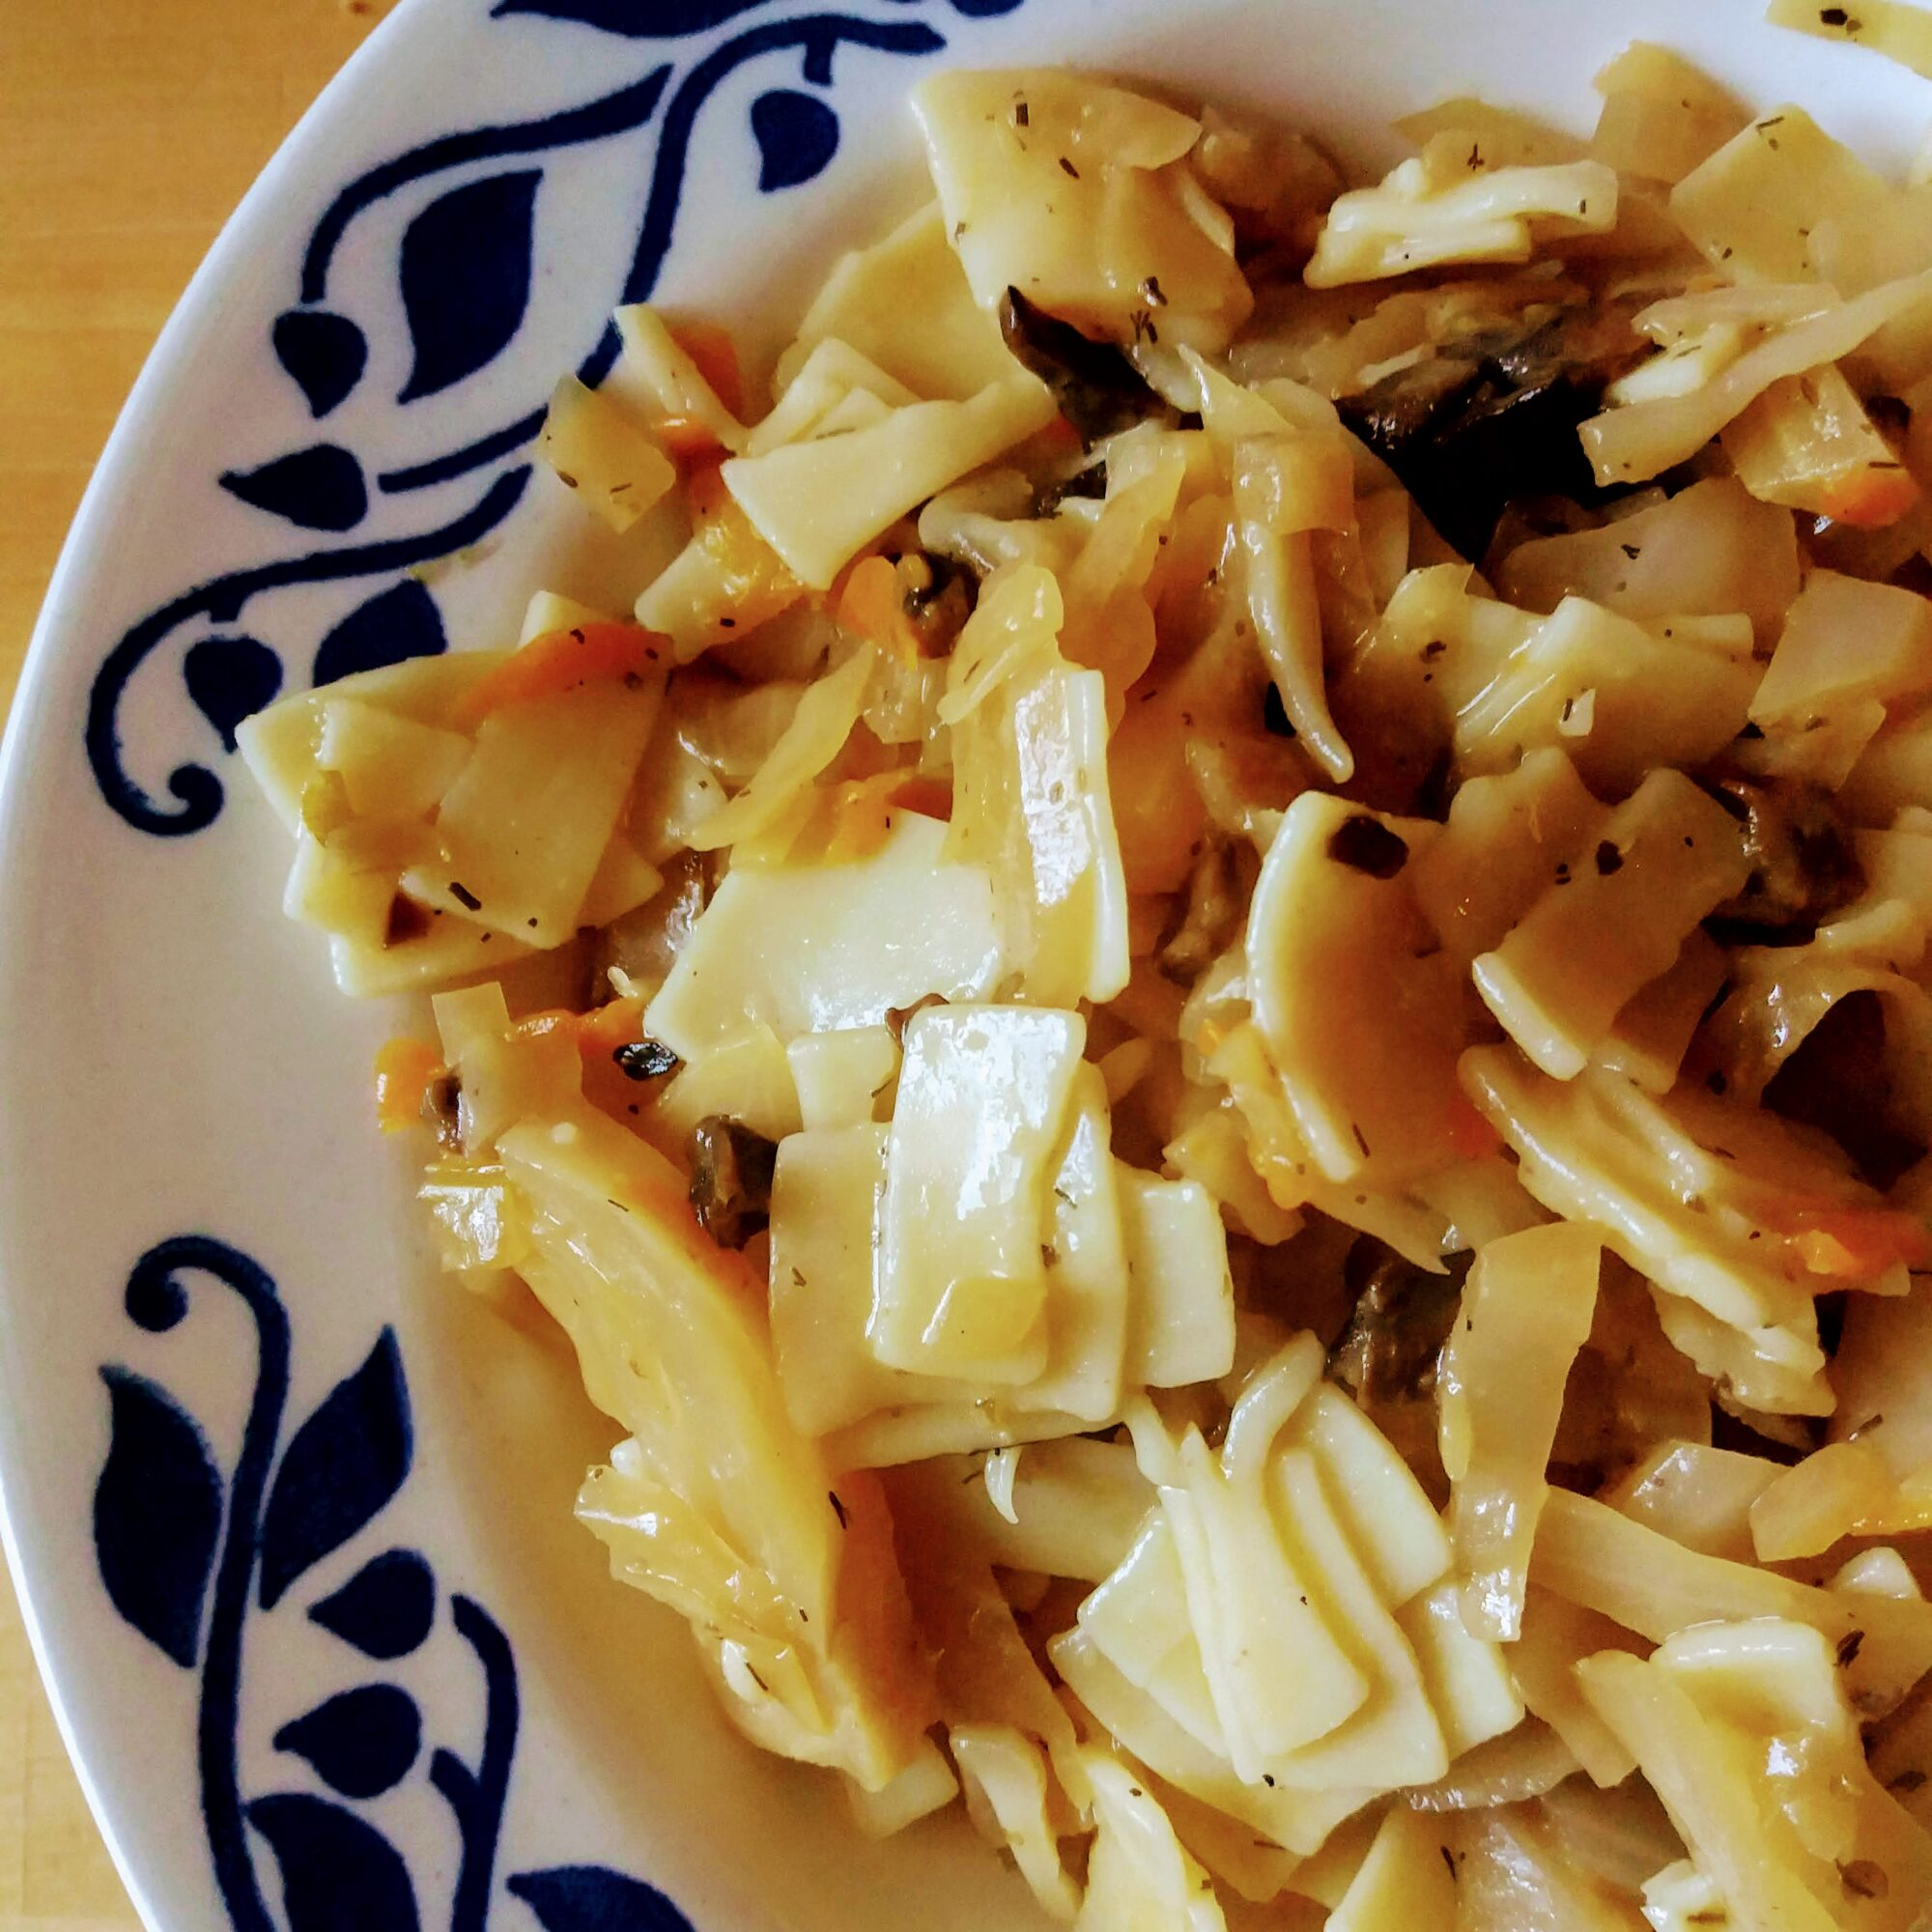 A bowl of noodles with cabbage and mushrooms call Łazanki in Polish.